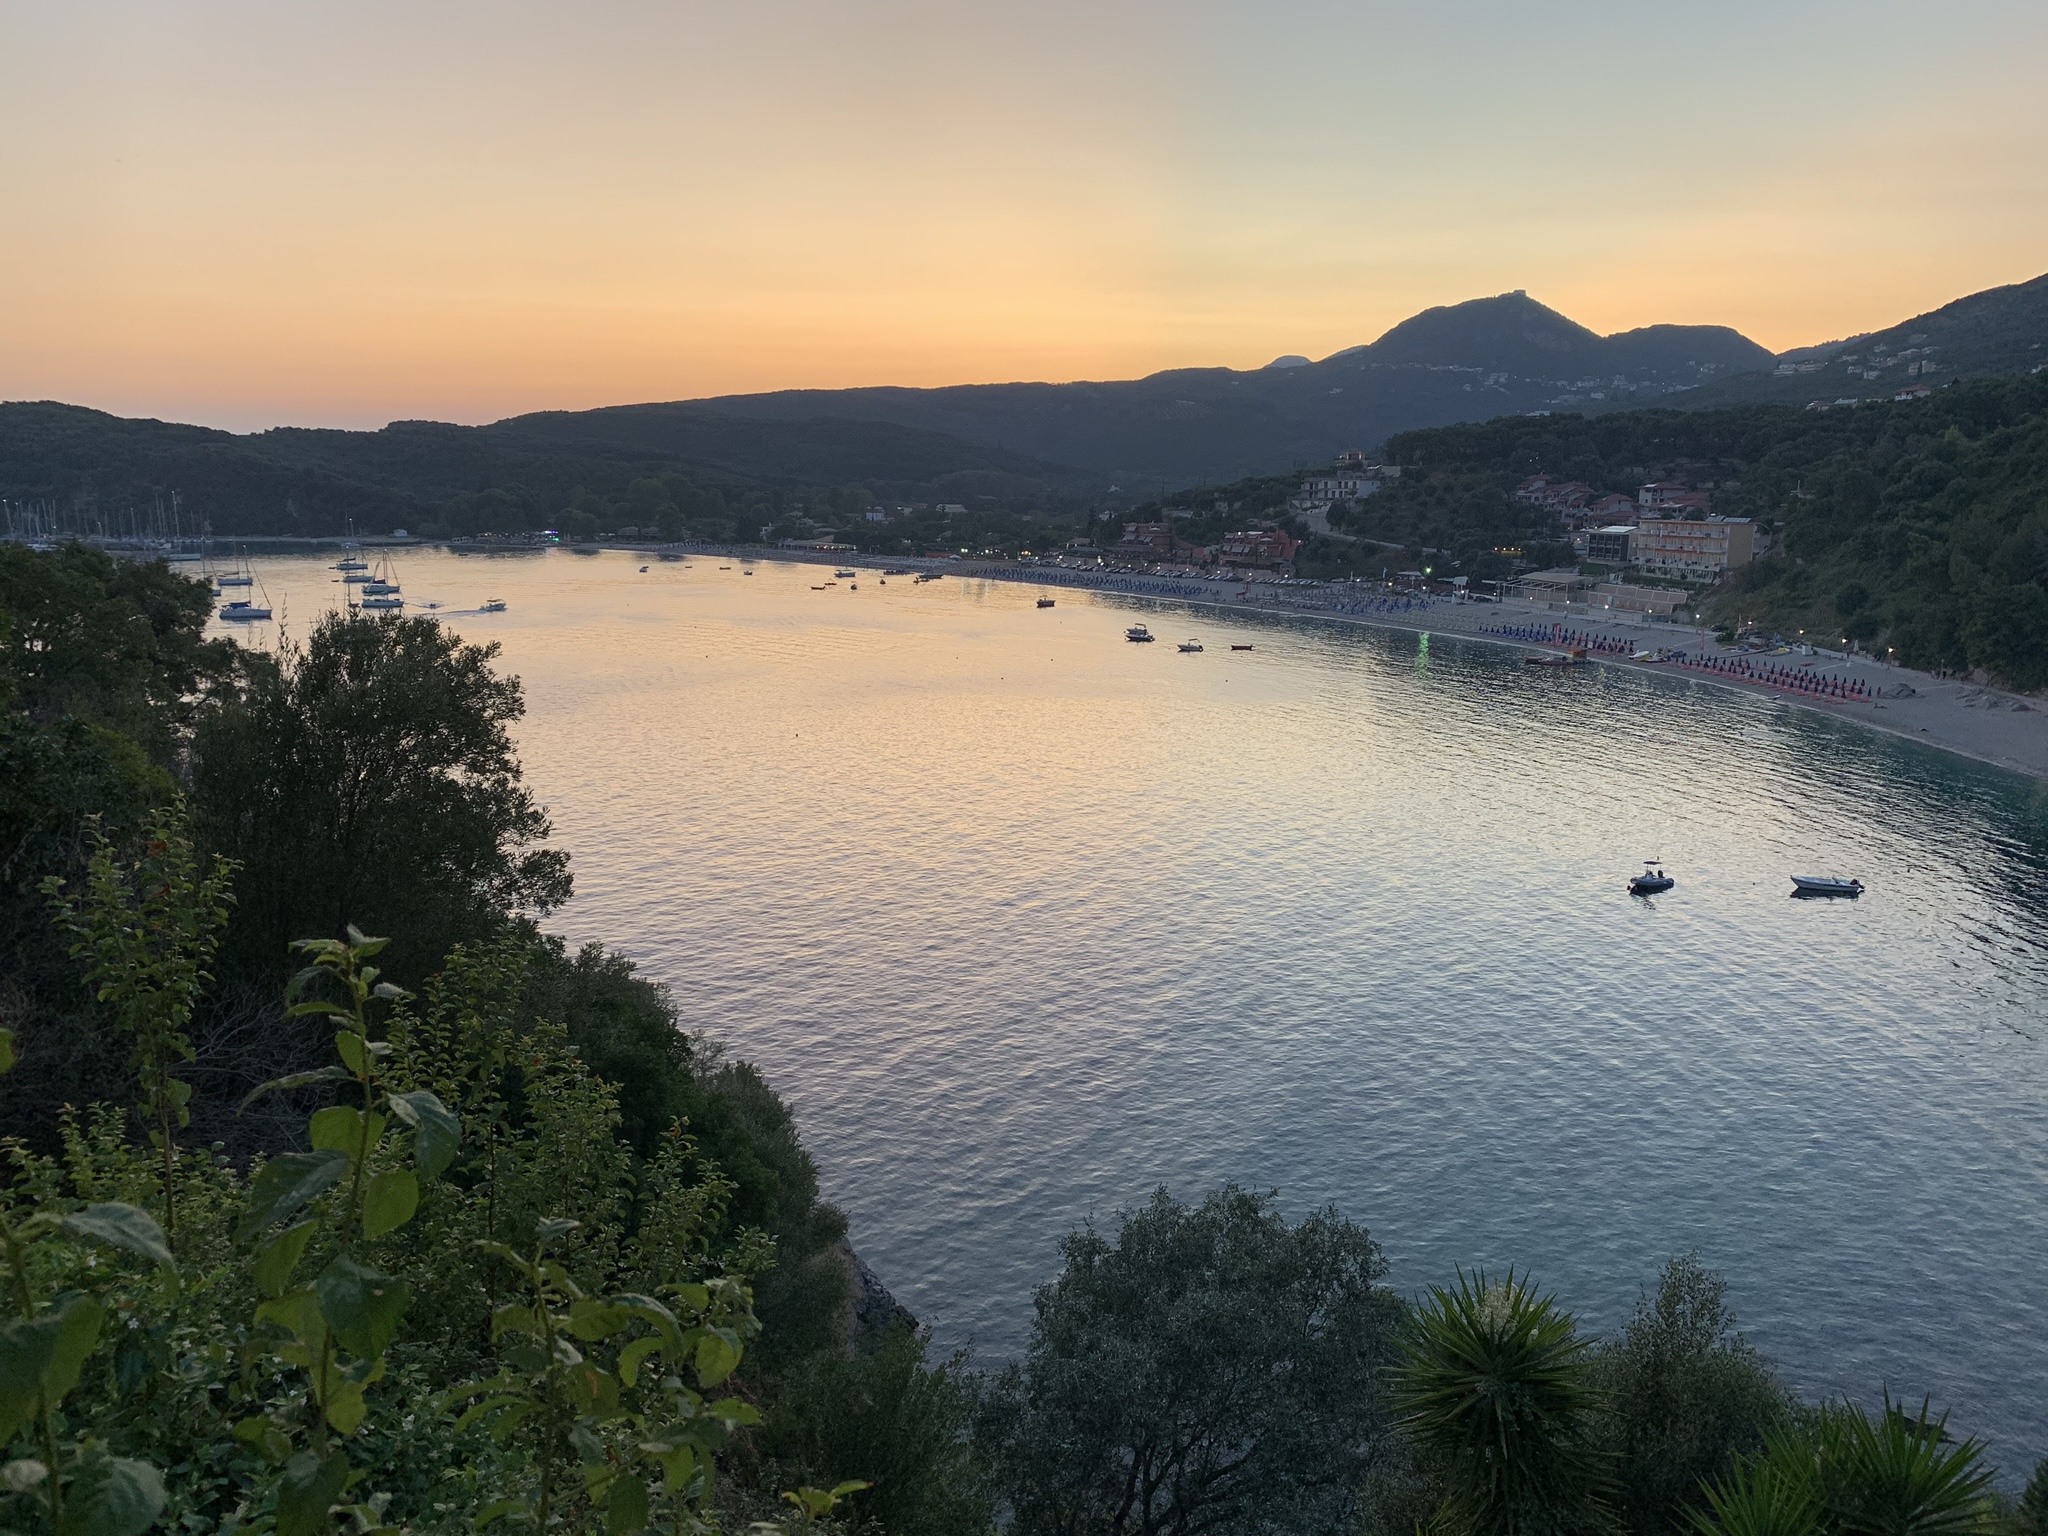 The view from Taverna Stefanos